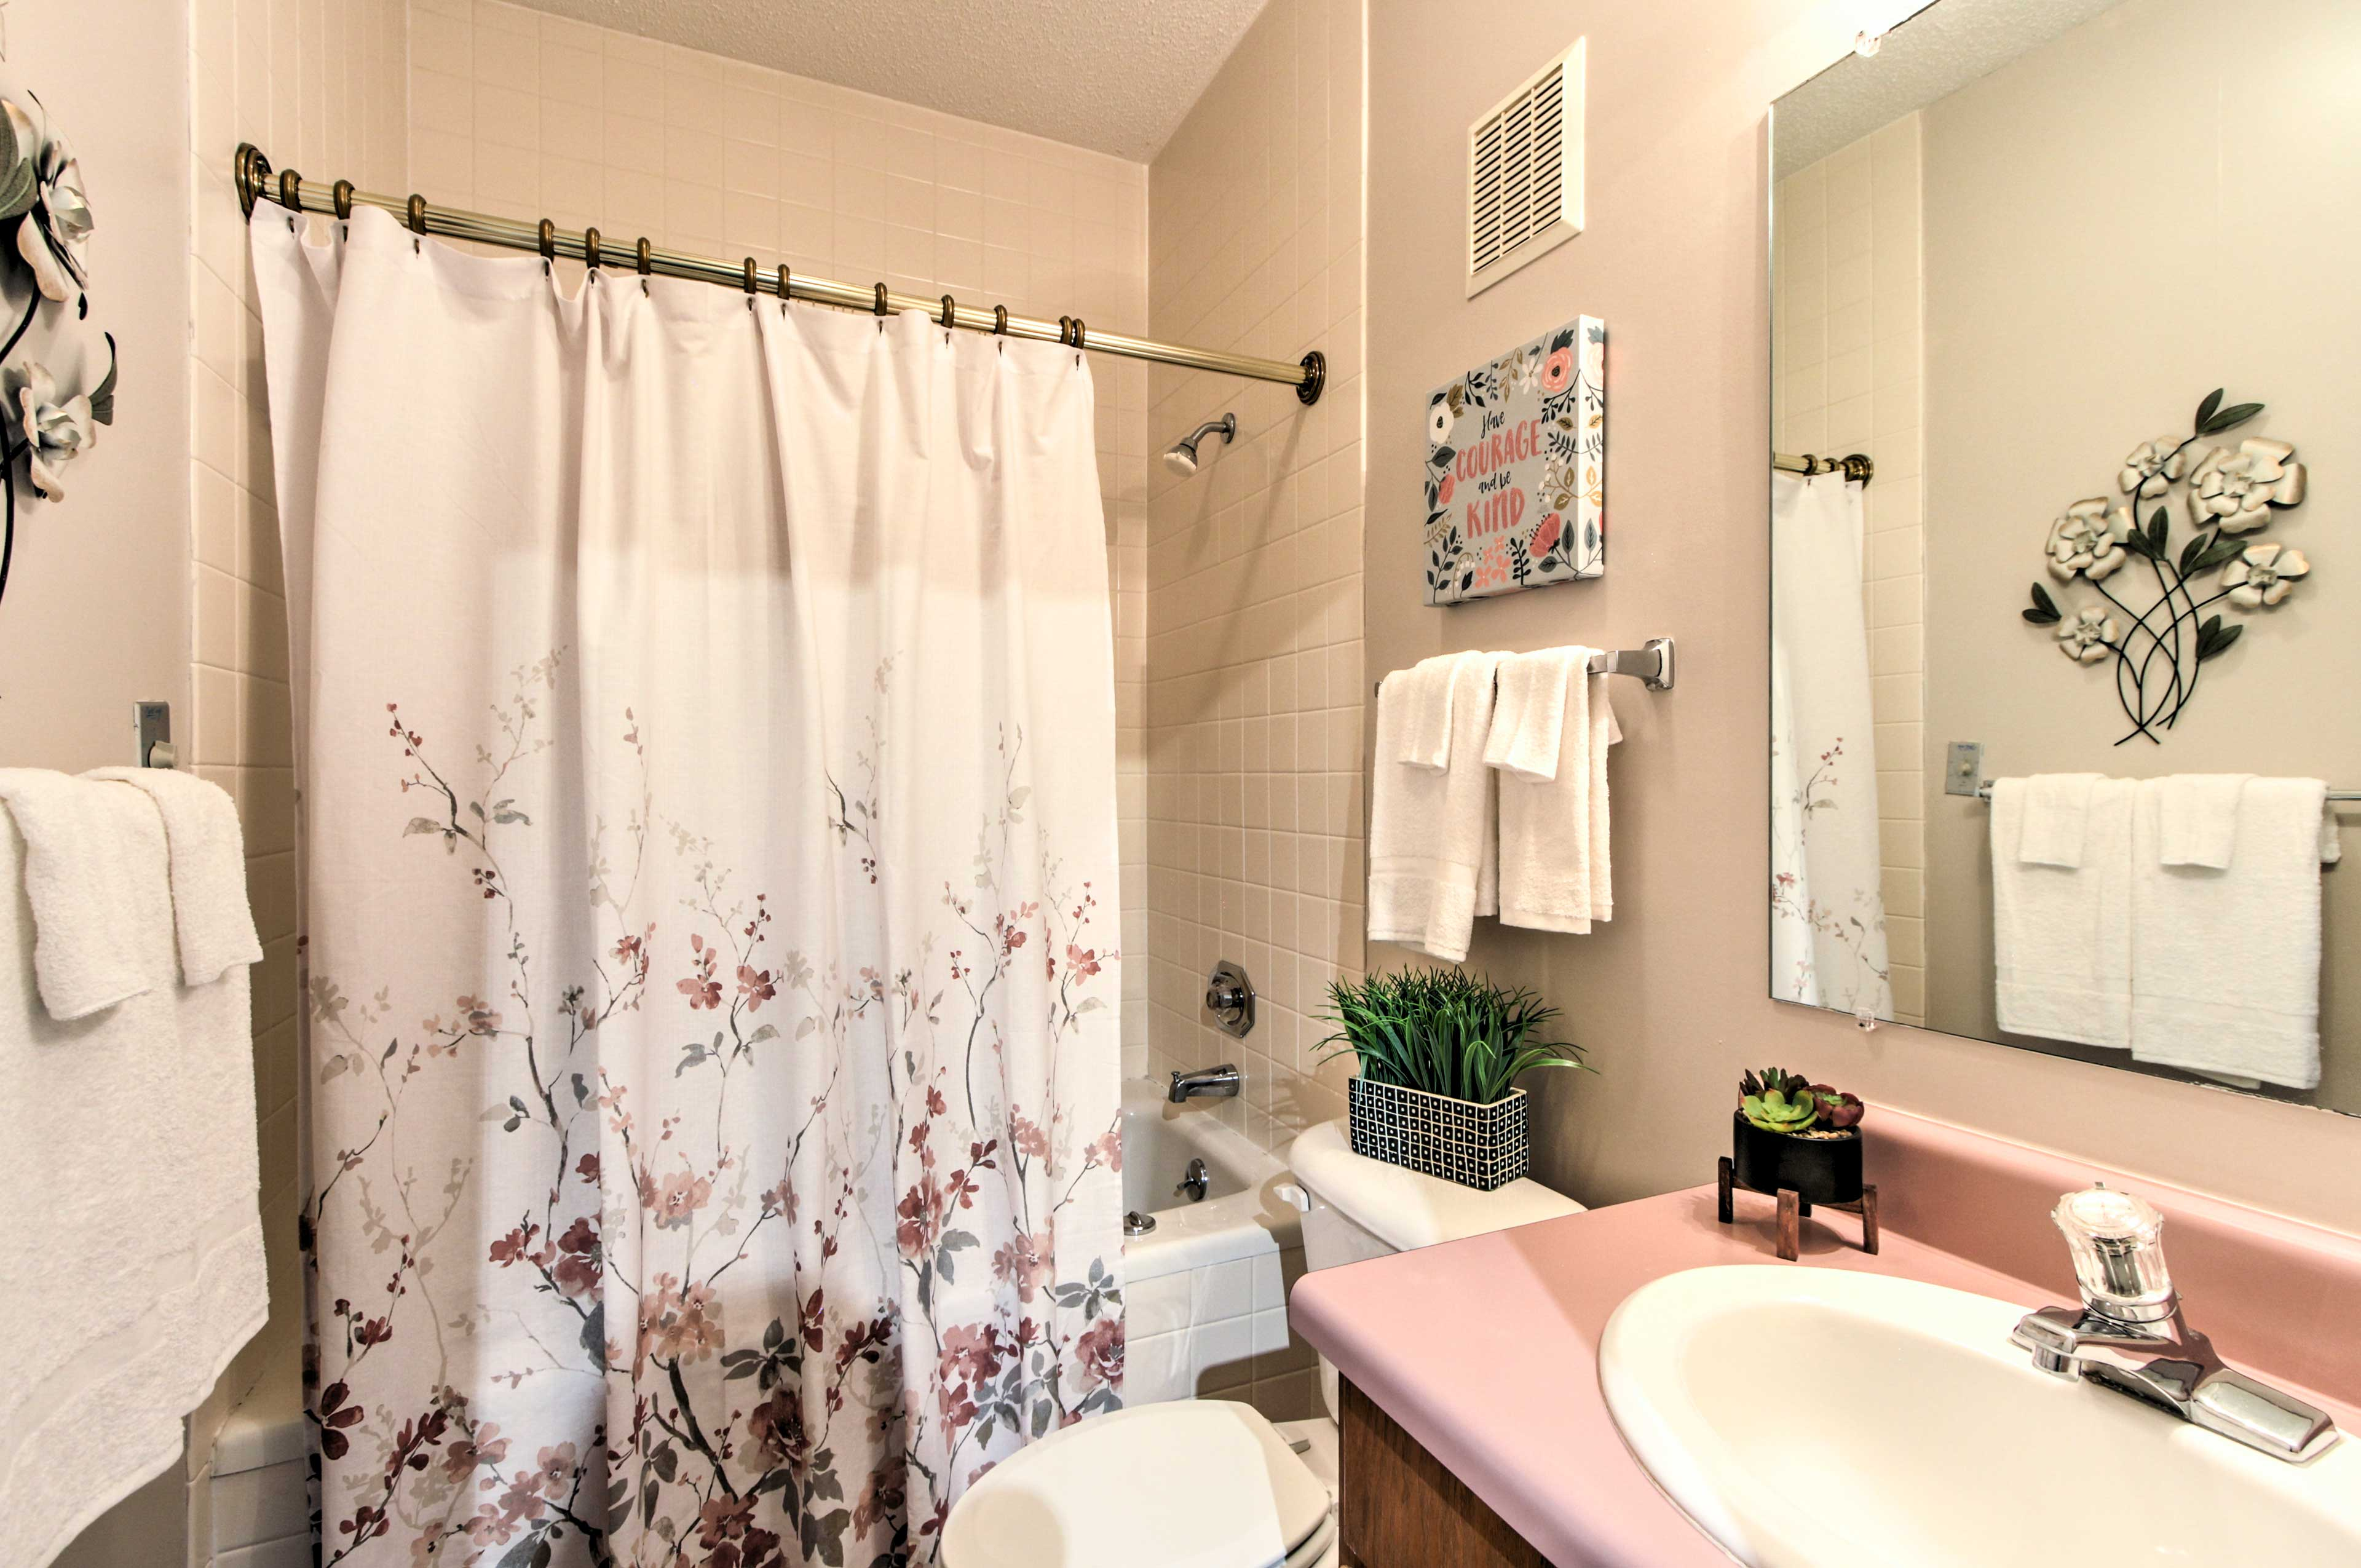 Both bathrooms feature jetted tubs.